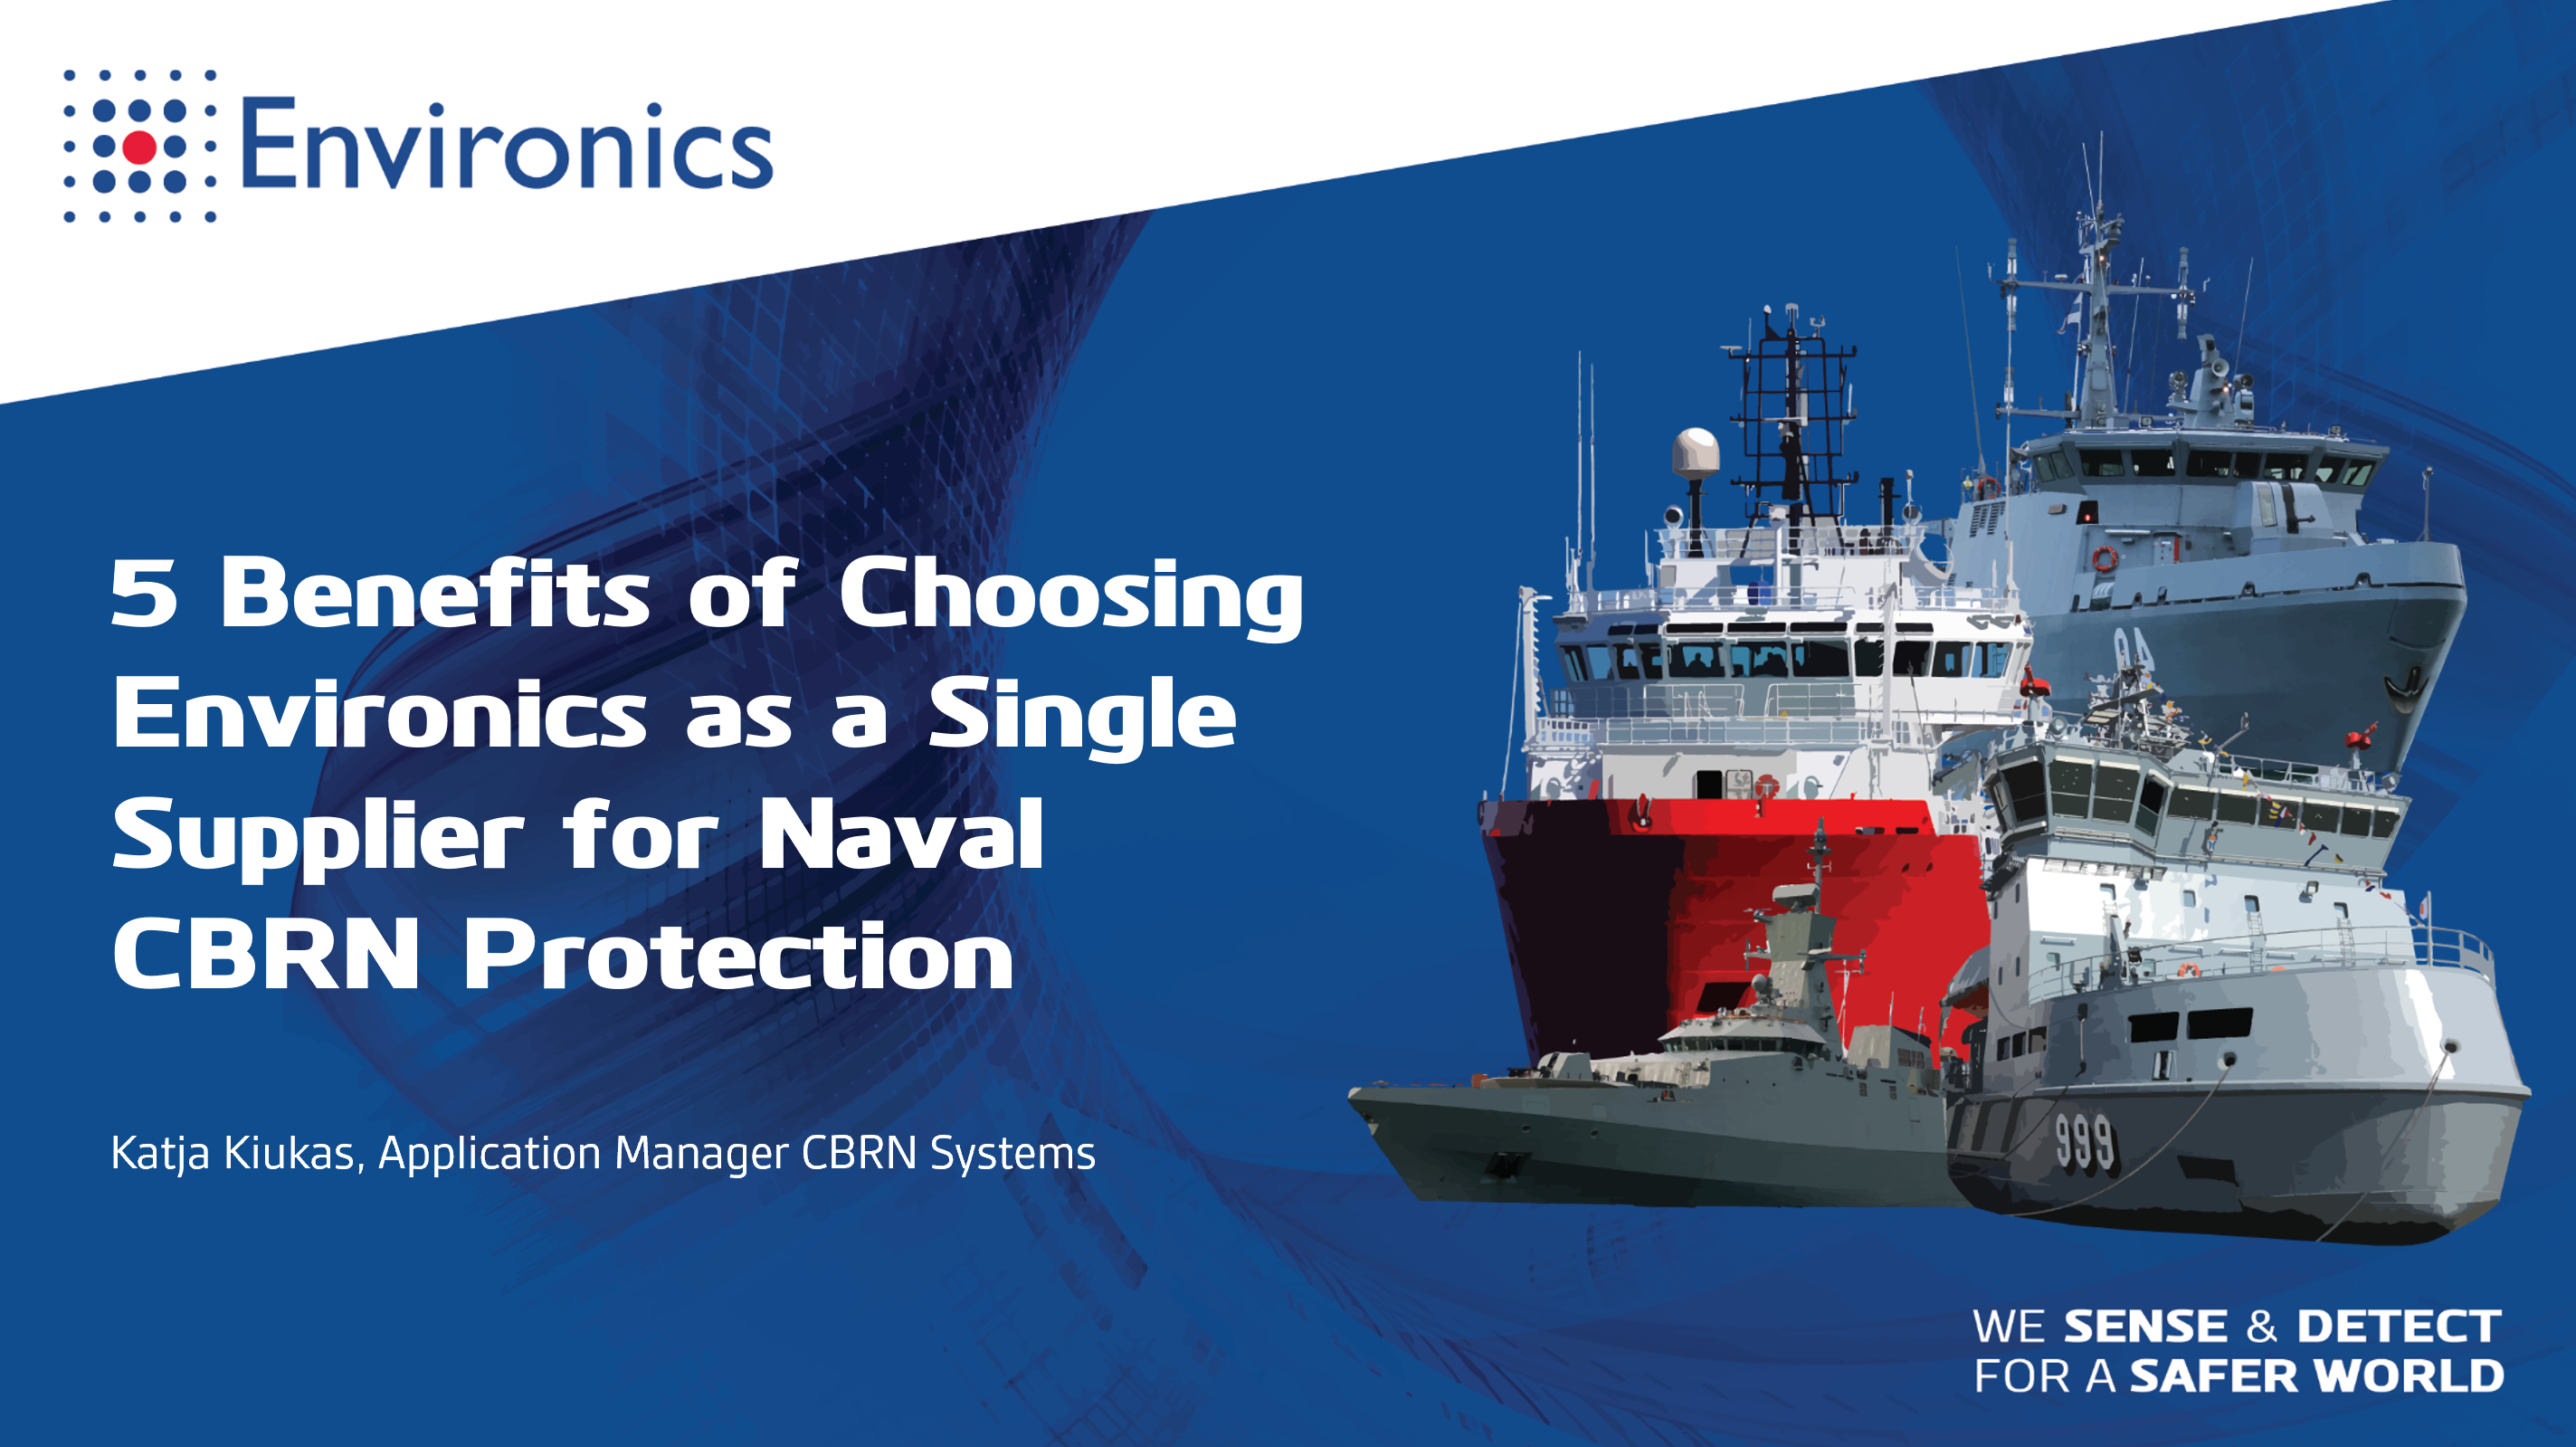 5 Benefits of Choosing Environics as a Single Supplier for Naval CBRN Protection